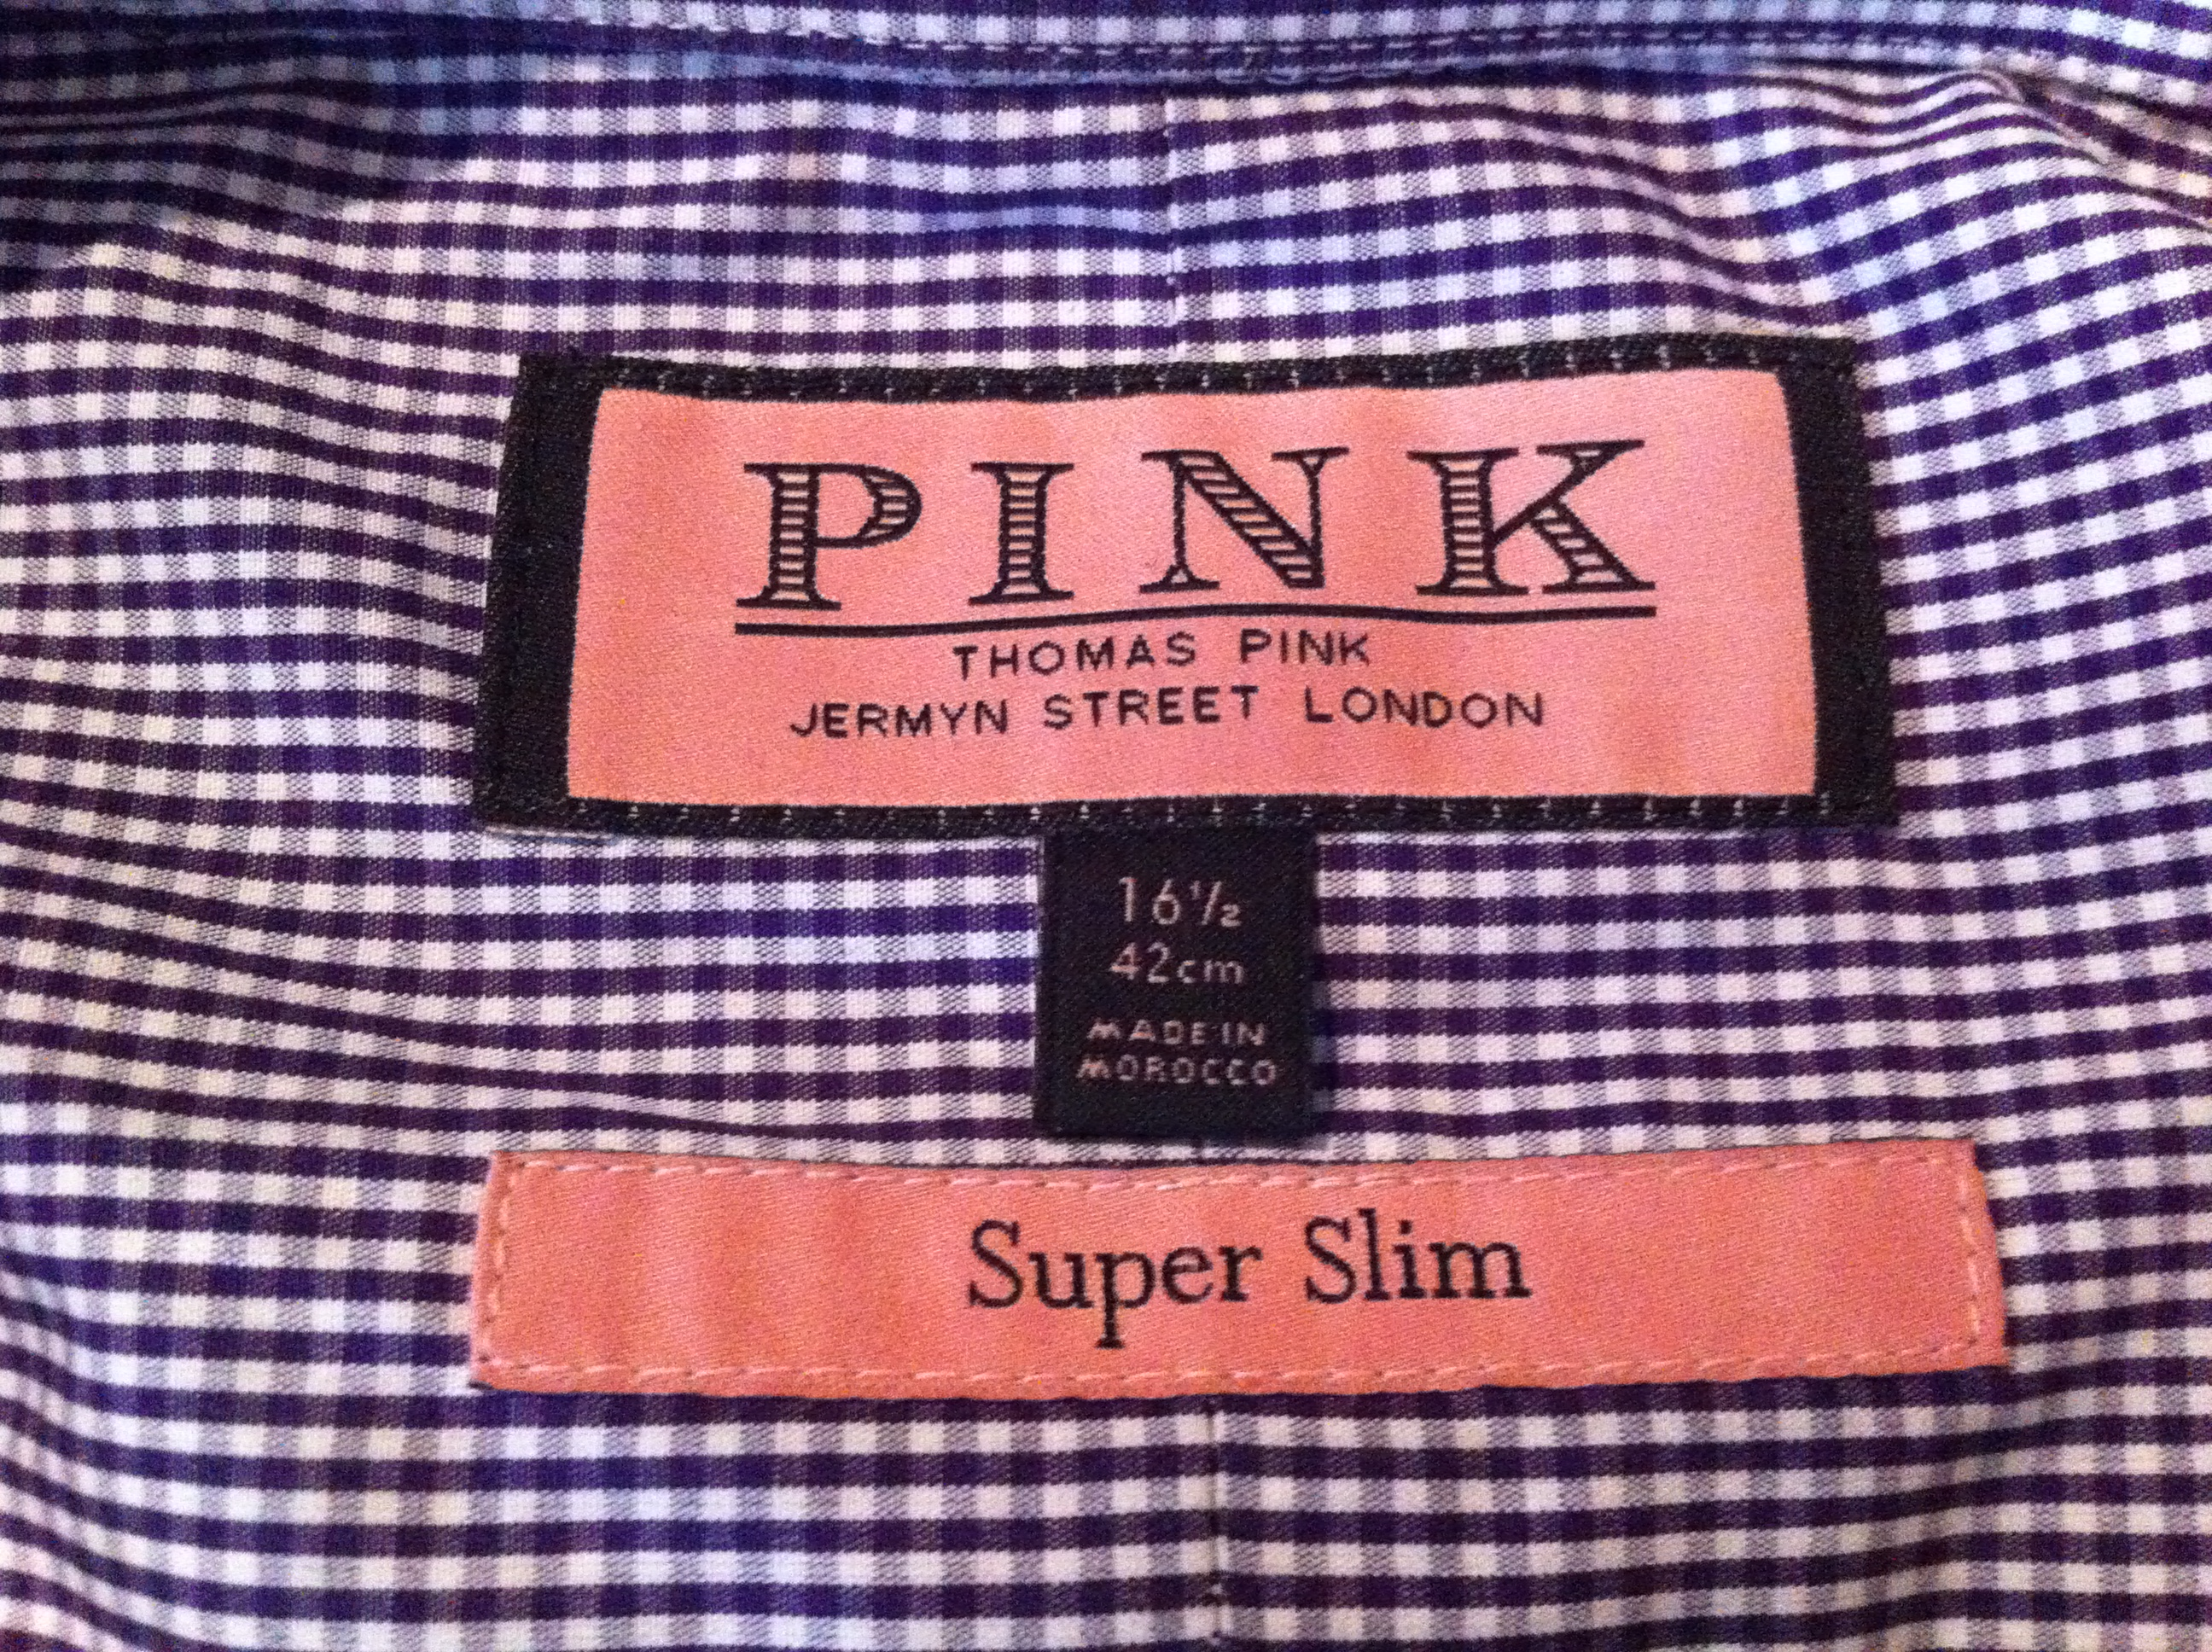 Thomas Pink Review - detailed garment sizing information